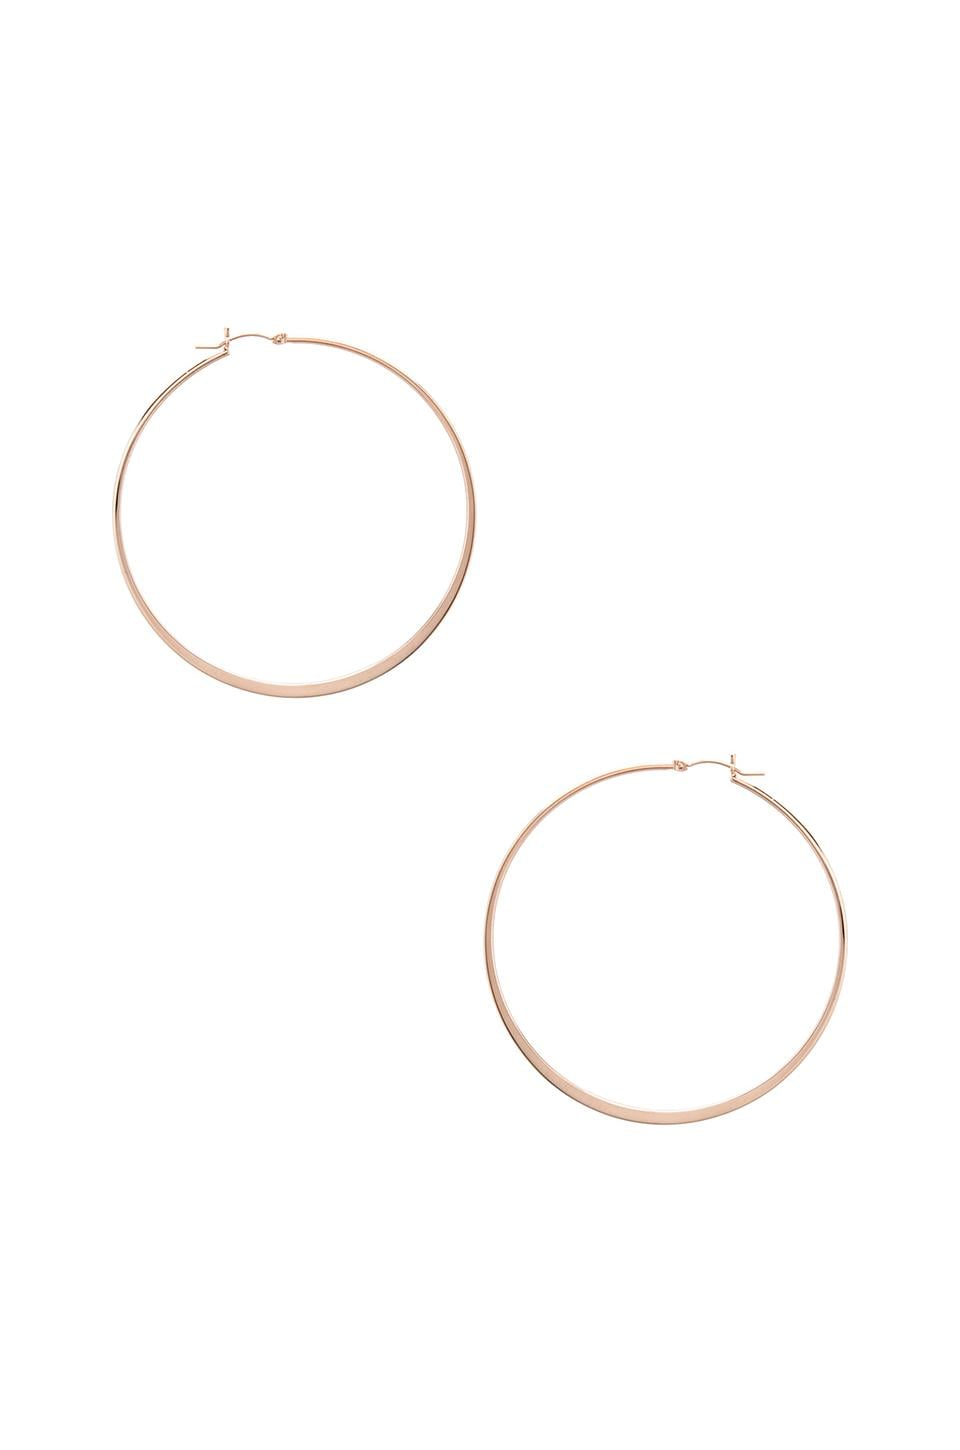 Jennifer Zeuner Olivia Hoop Earrings in Rosegold